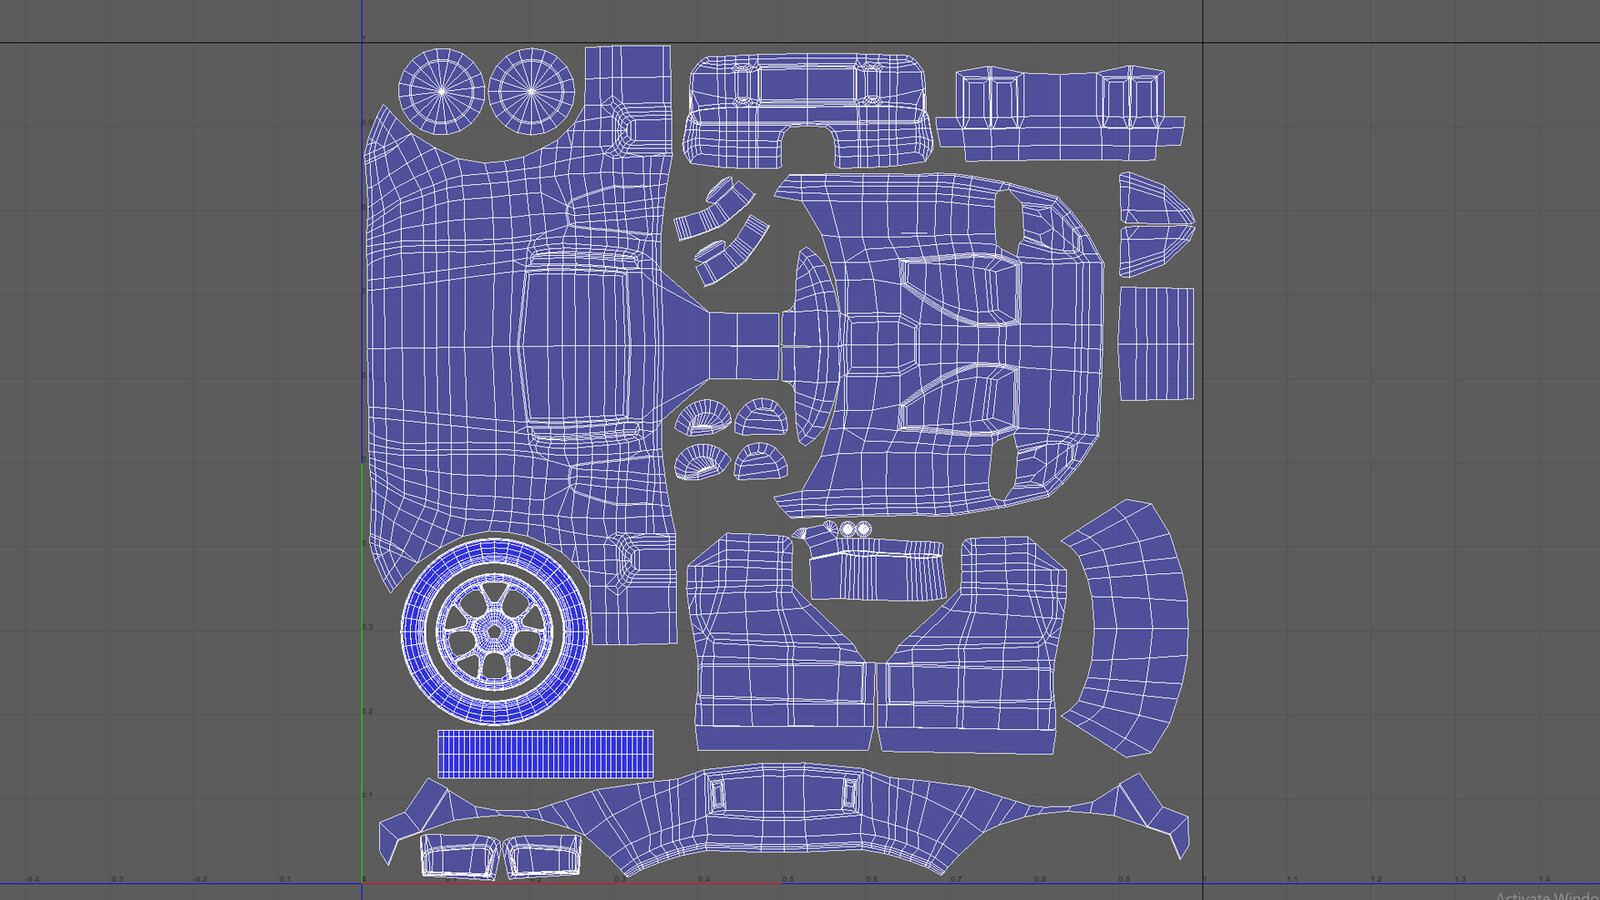 After creating the UV map, I exported the layout to use for texturing in Photoshop.